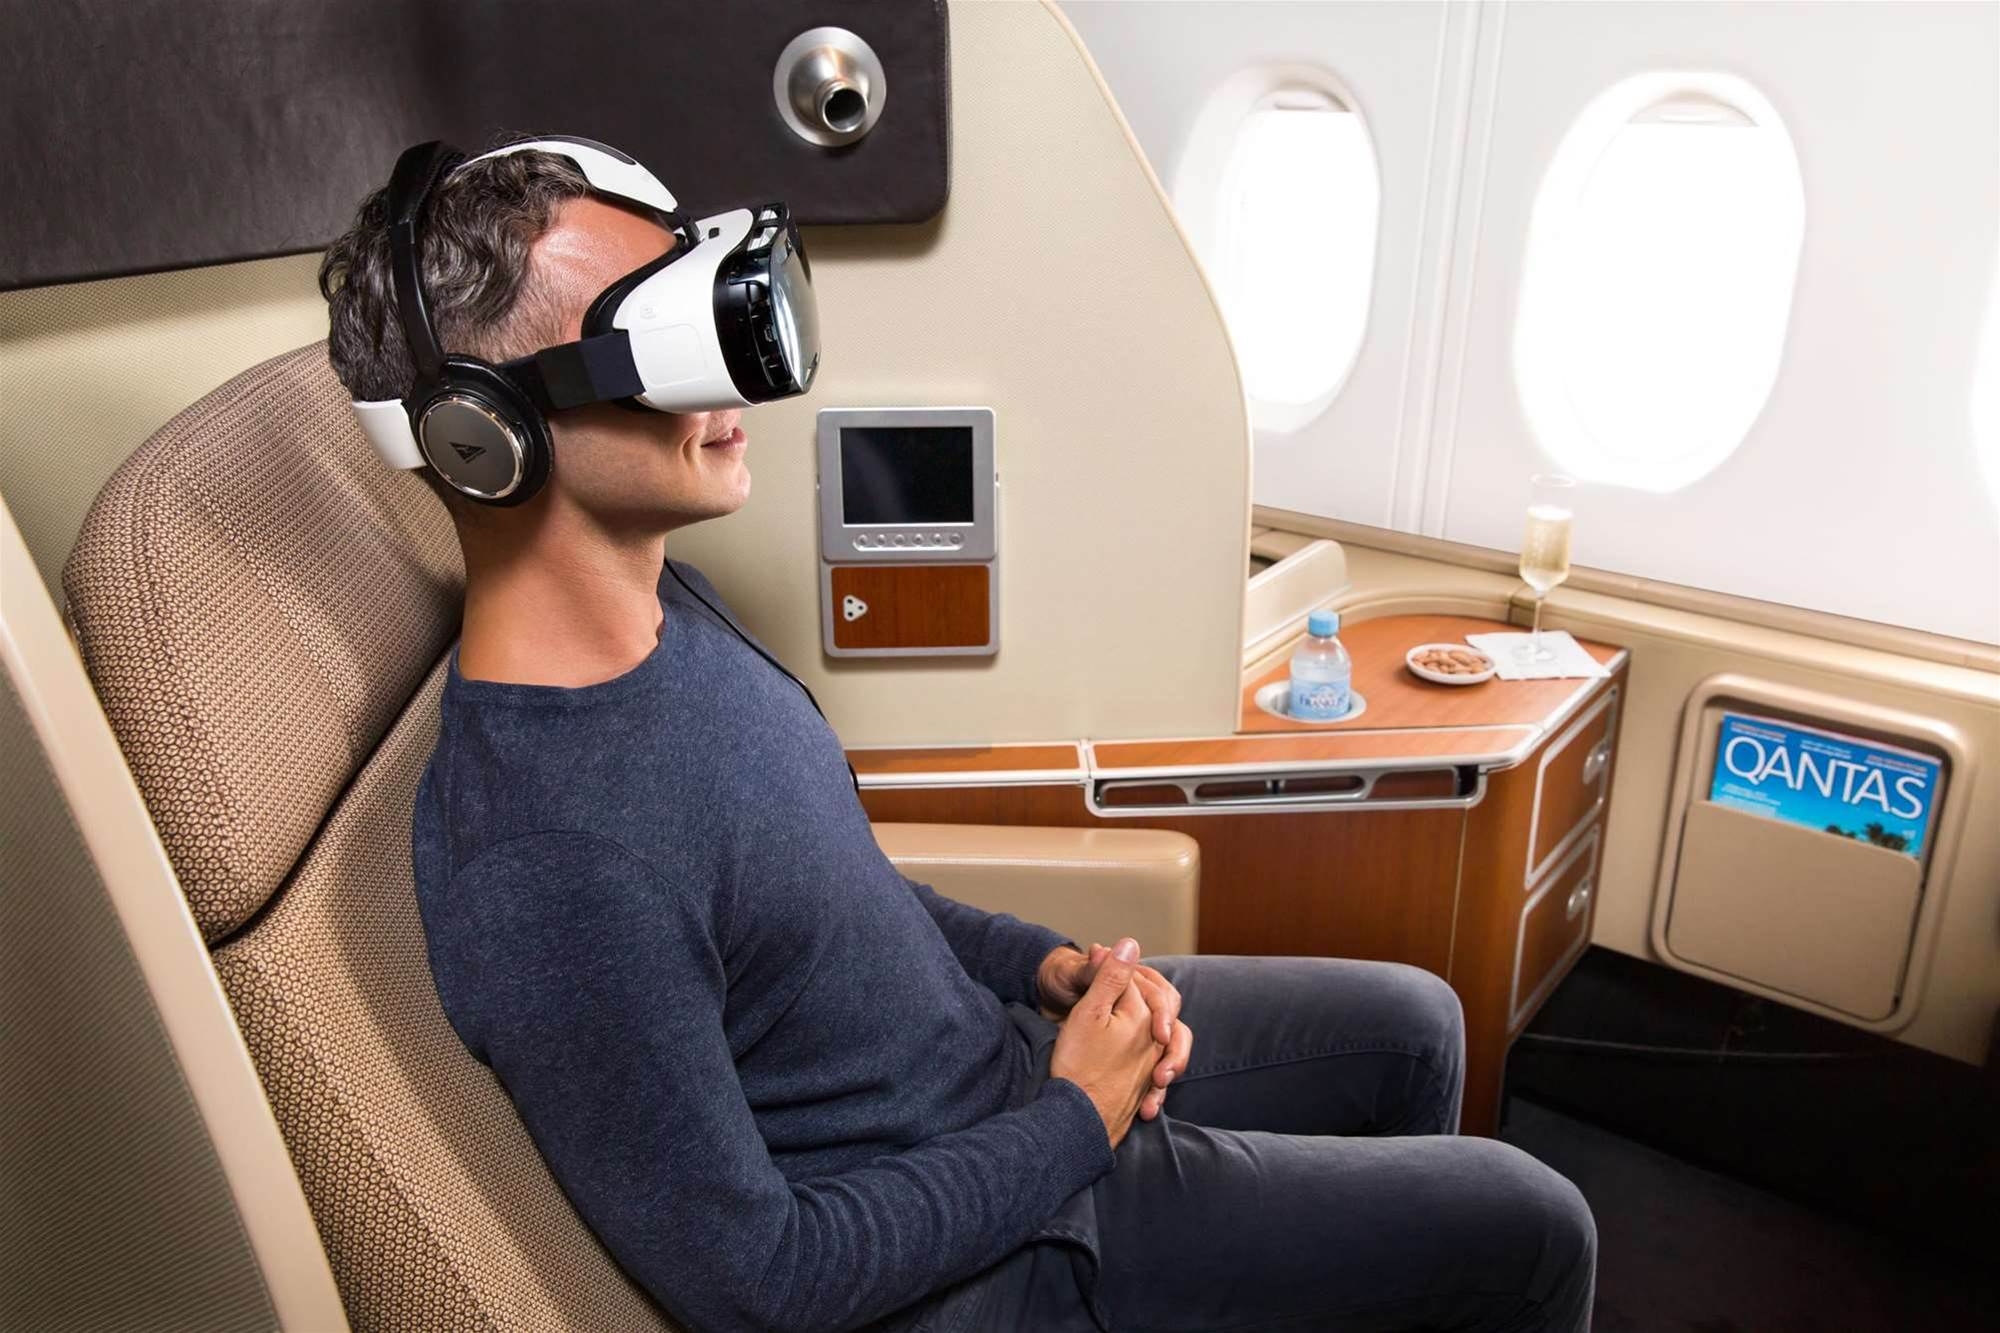 Qantas to offer virtual reality headsets in first class